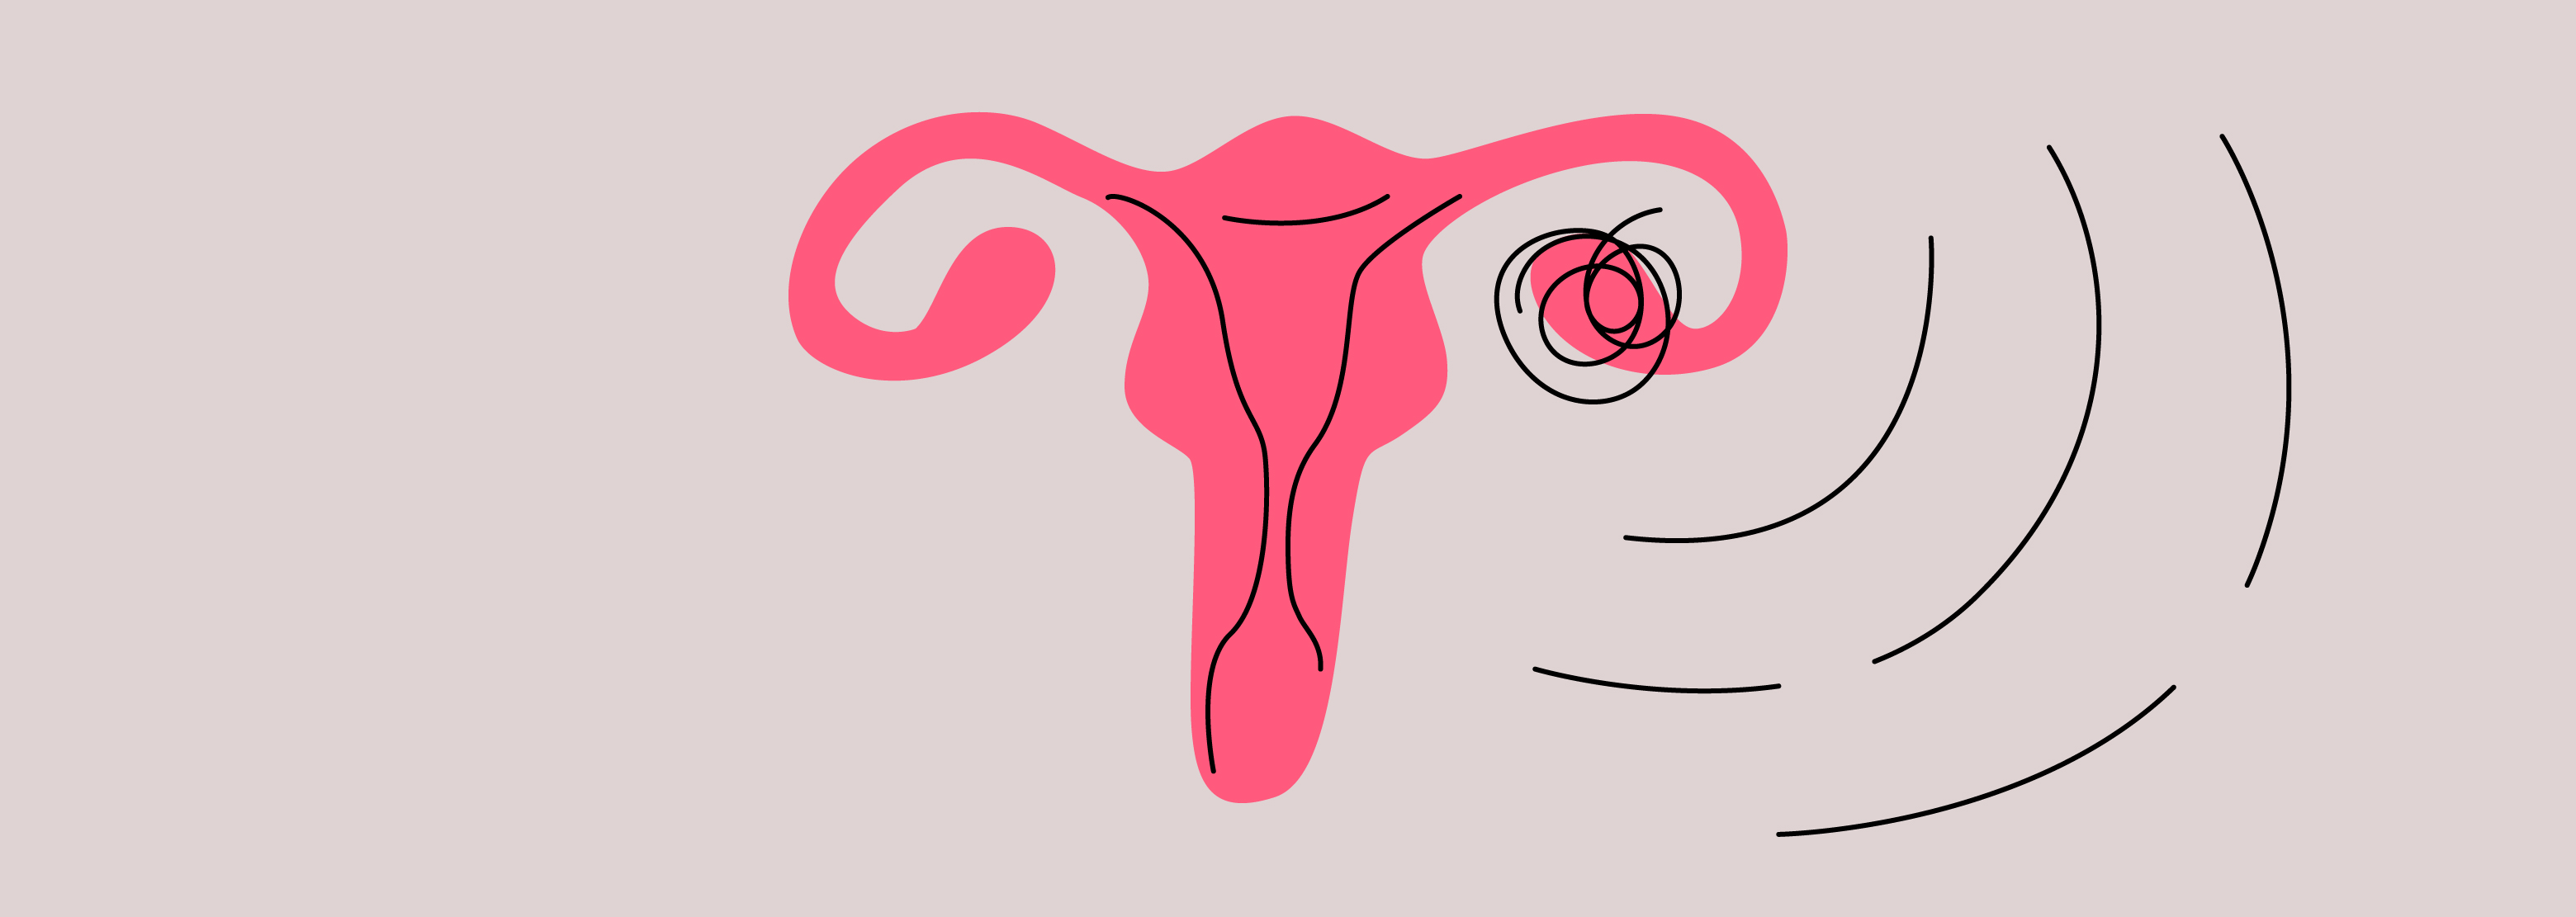 Ovary Pain During Pregnancy: What Does It Mean?